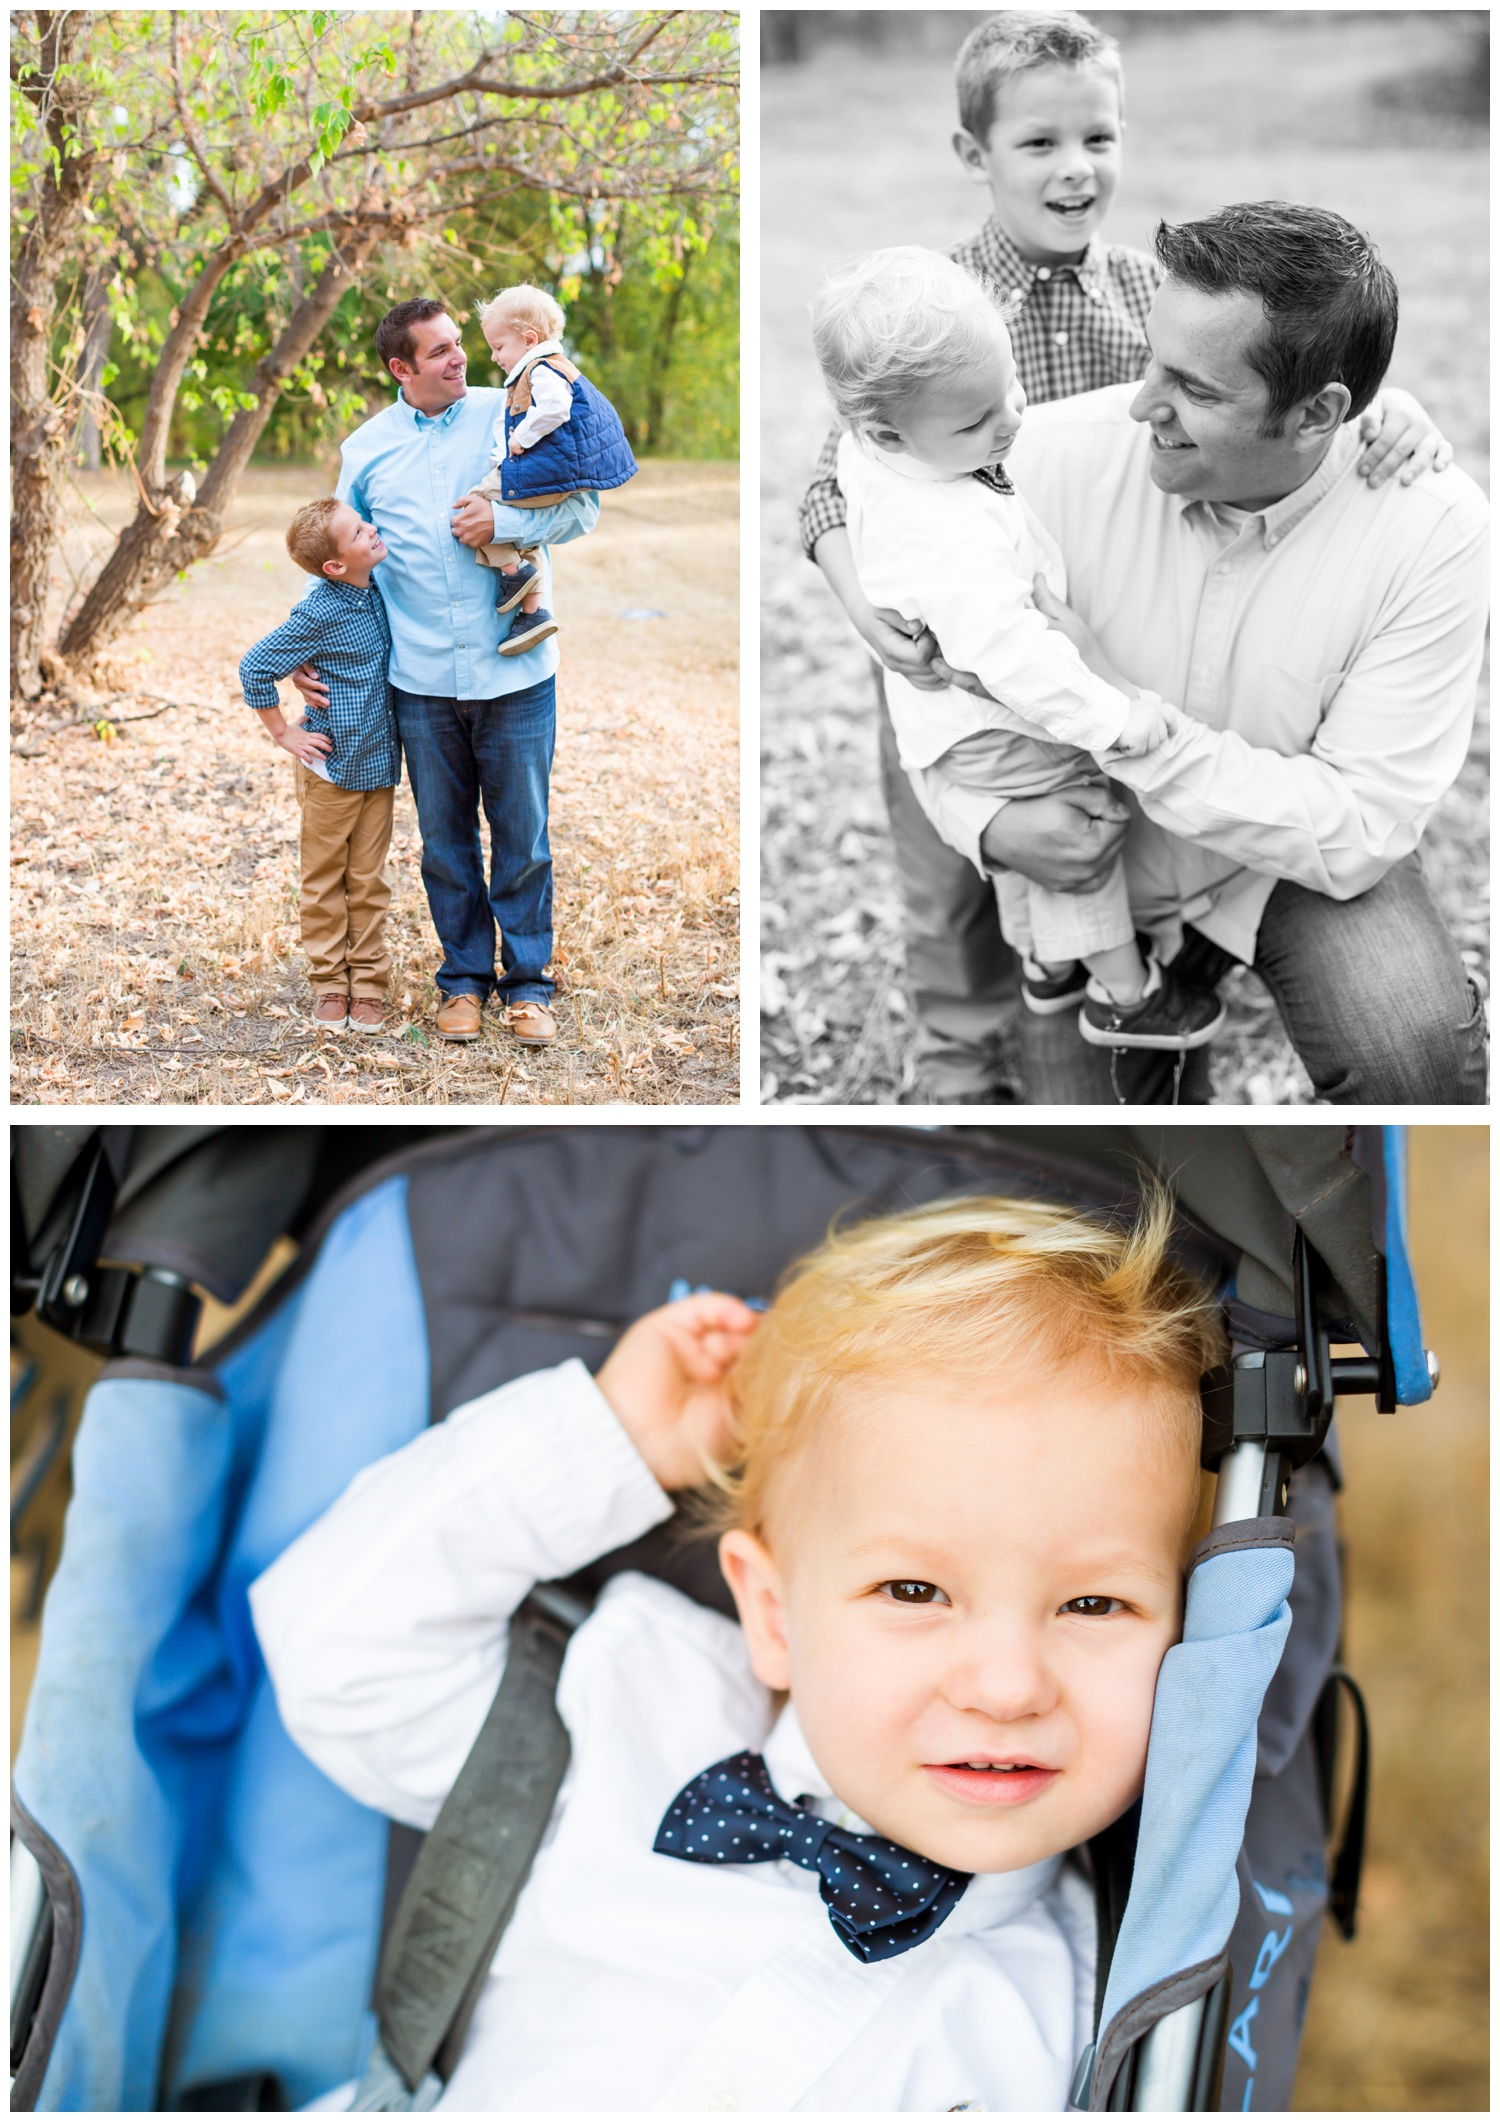 fort collins family photography08.jpg